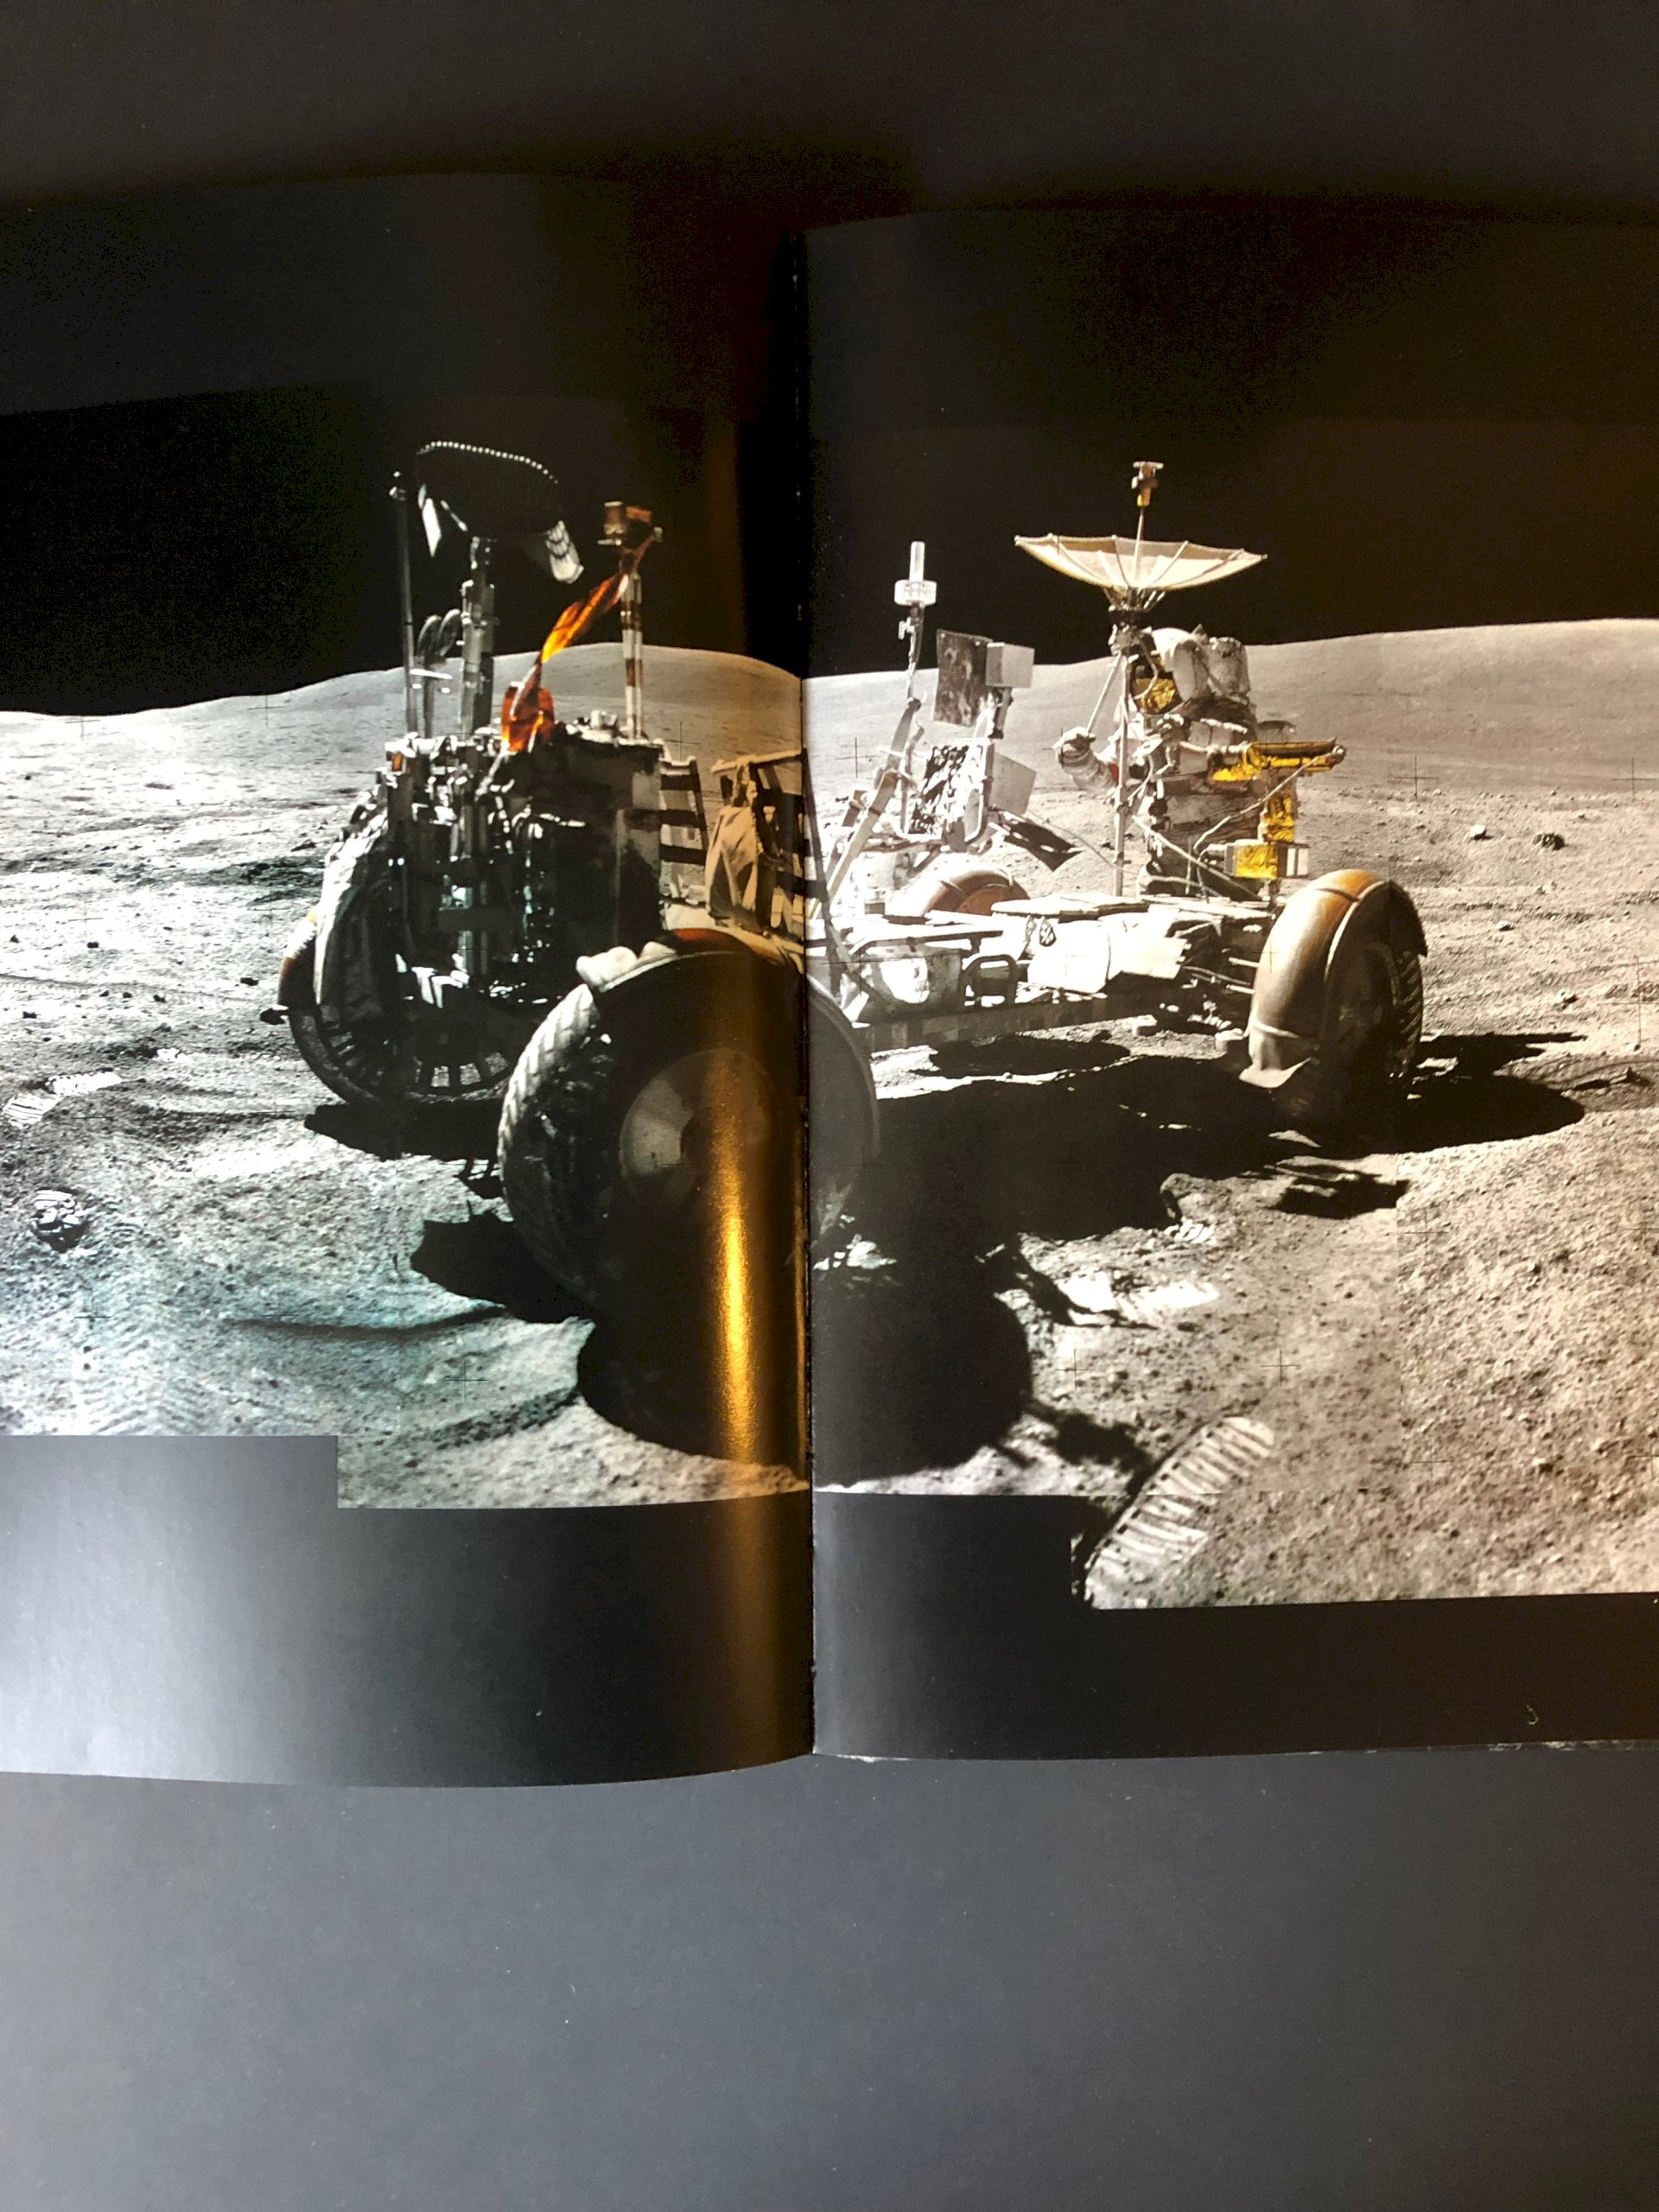 Full Moon Book By Michael Light: Apollo Missions